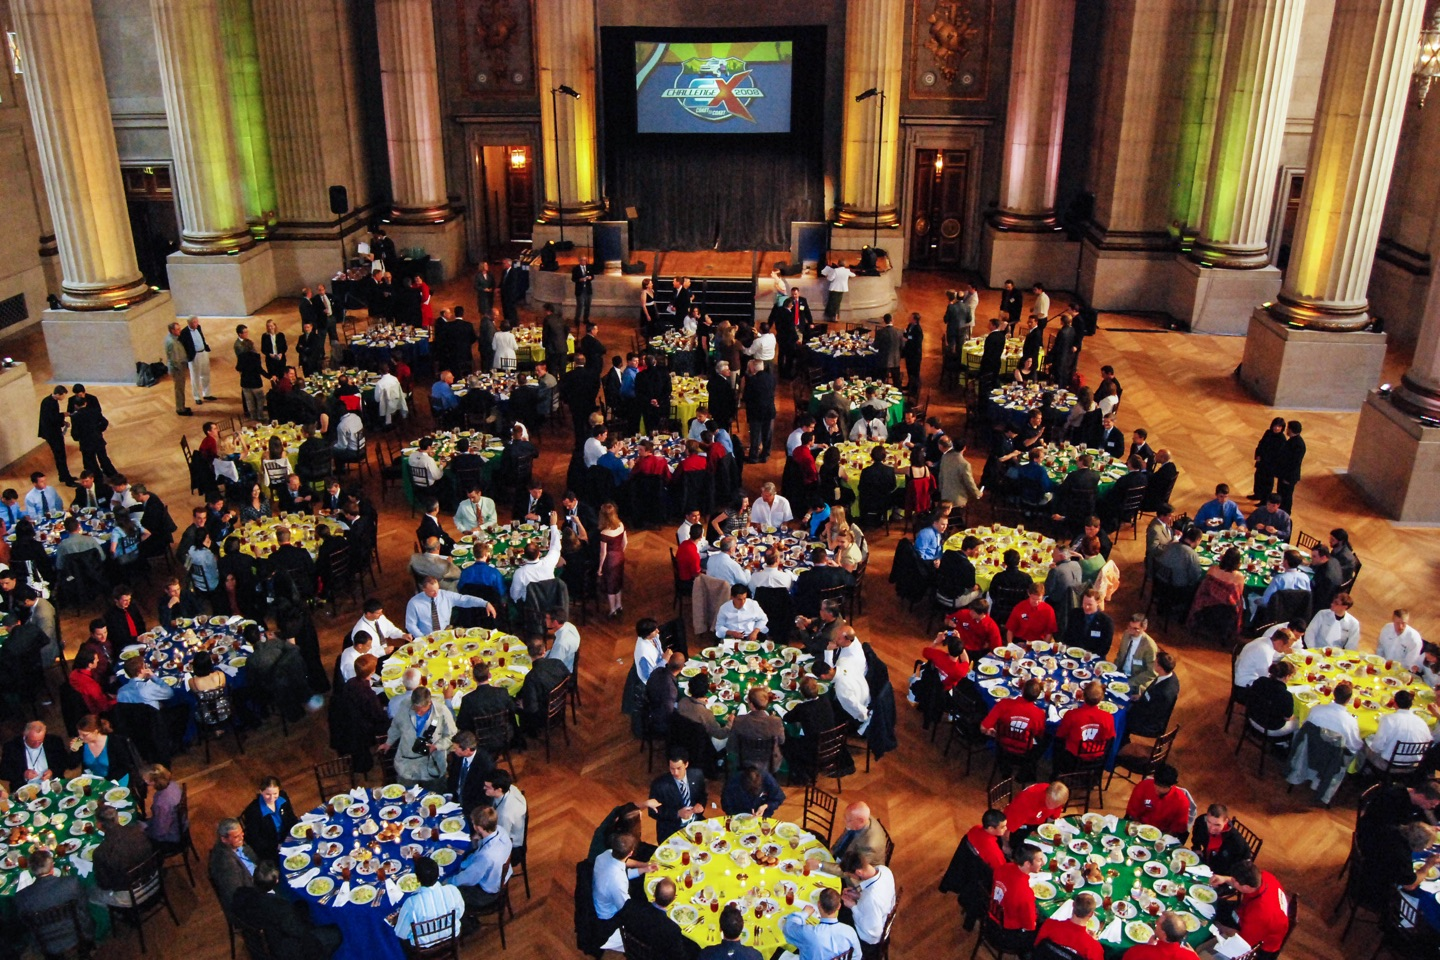 Challenge X competition at Andrew Mellon Theater in Washington D.C.